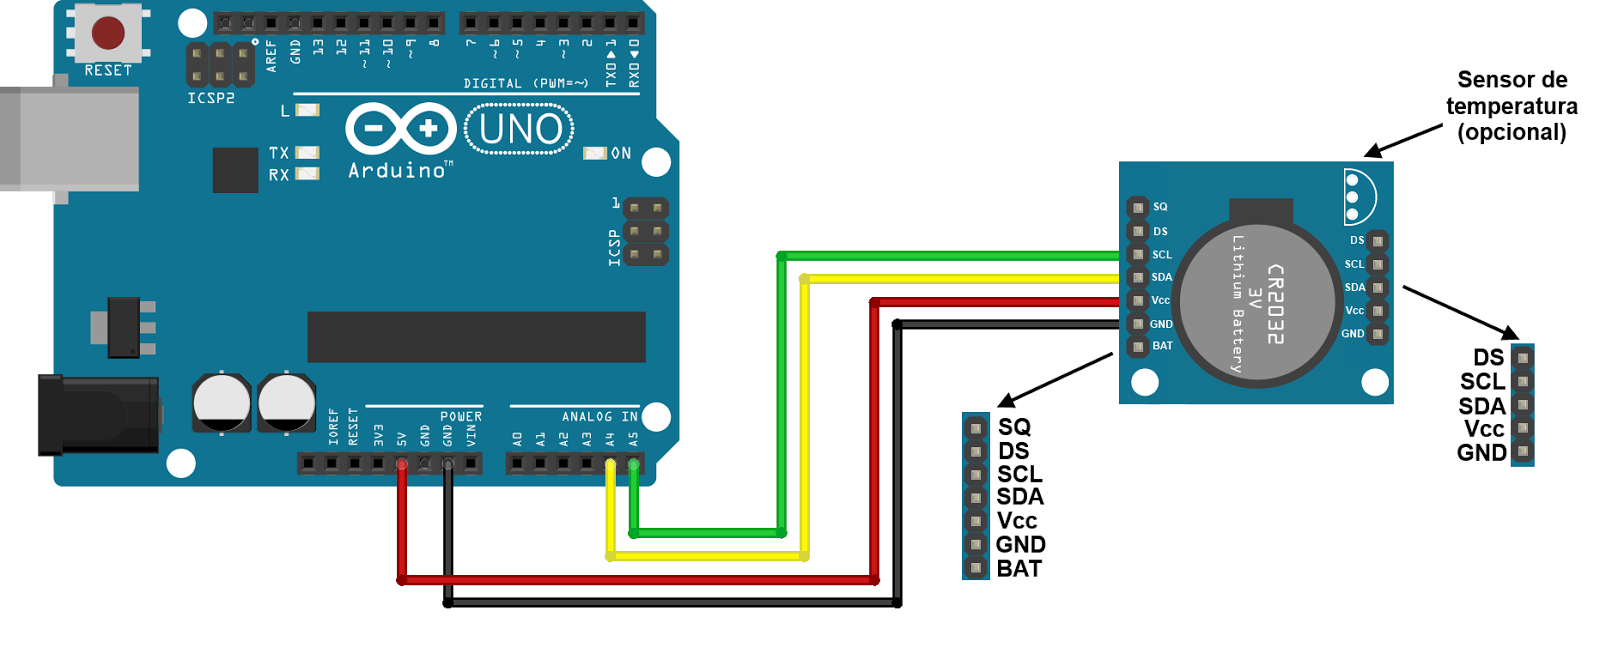 how to connect push button to arduino without using functions